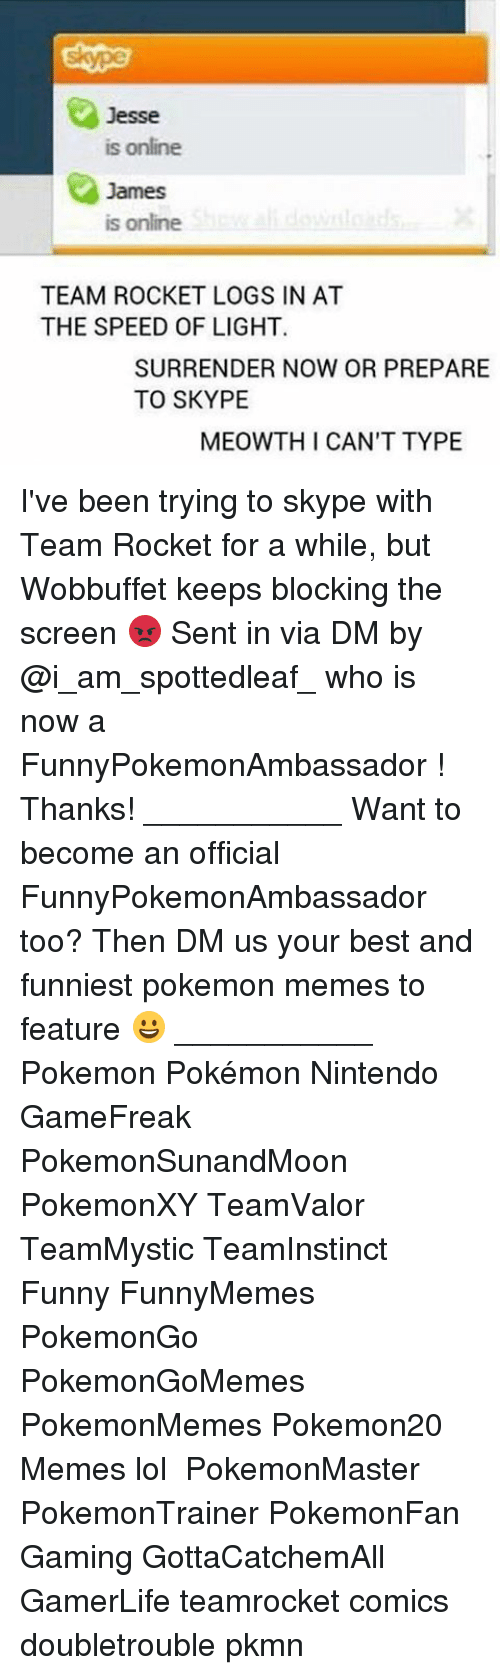 Surrend: Jesse  is online  James  is online  TEAM ROCKET LOGS IN AT  THE SPEED OF LIGHT  SURRENDER NOW OR PREPARE  TO SKYPE  MEOWTH I CAN'T TYPE I've been trying to skype with Team Rocket for a while, but Wobbuffet keeps blocking the screen 😡 Sent in via DM by @i_am_spottedleaf_ who is now a FunnyPokemonAmbassador ! Thanks! ___________ Want to become an official FunnyPokemonAmbassador too? Then DM us your best and funniest pokemon memes to feature 😀 ___________ Pokemon Pokémon Nintendo GameFreak PokemonSunandMoon PokemonXY TeamValor TeamMystic TeamInstinct Funny FunnyMemes PokemonGo PokemonGoMemes PokemonMemes Pokemon20 Memes lol ポケットモンスター PokemonMaster PokemonTrainer PokemonFan Gaming GottaCatchemAll GamerLife teamrocket comics doubletrouble pkmn